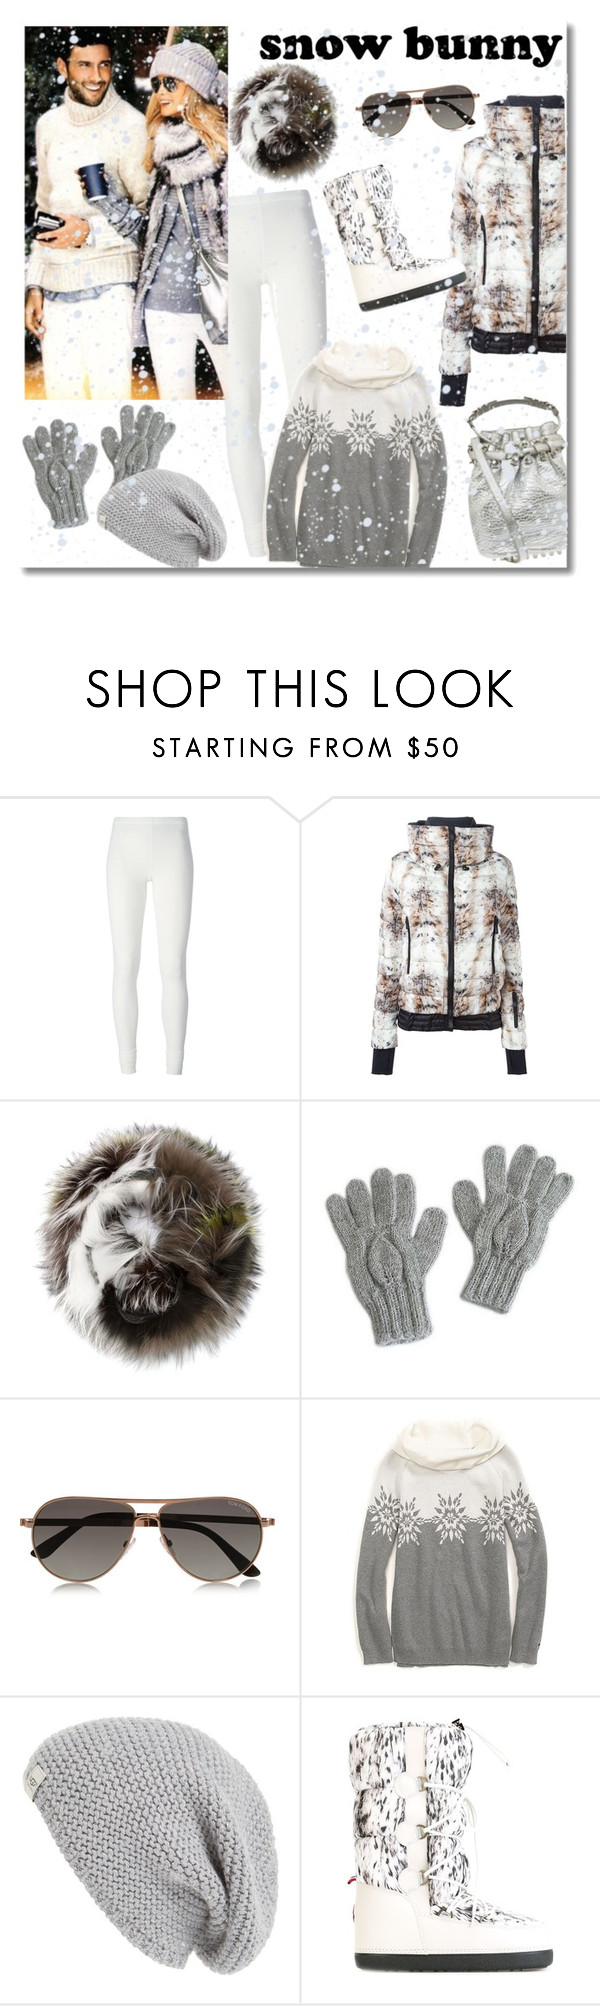 """""""Snow Bunny"""" by junglover ❤ liked on Polyvore featuring Rick Owens Lilies, Moncler Grenoble, Yves Salomon, NOVICA, Tom Ford, Tommy Hilfiger, UGG Australia, polyvoreeditorial, polyvorecontest and winterwhite"""